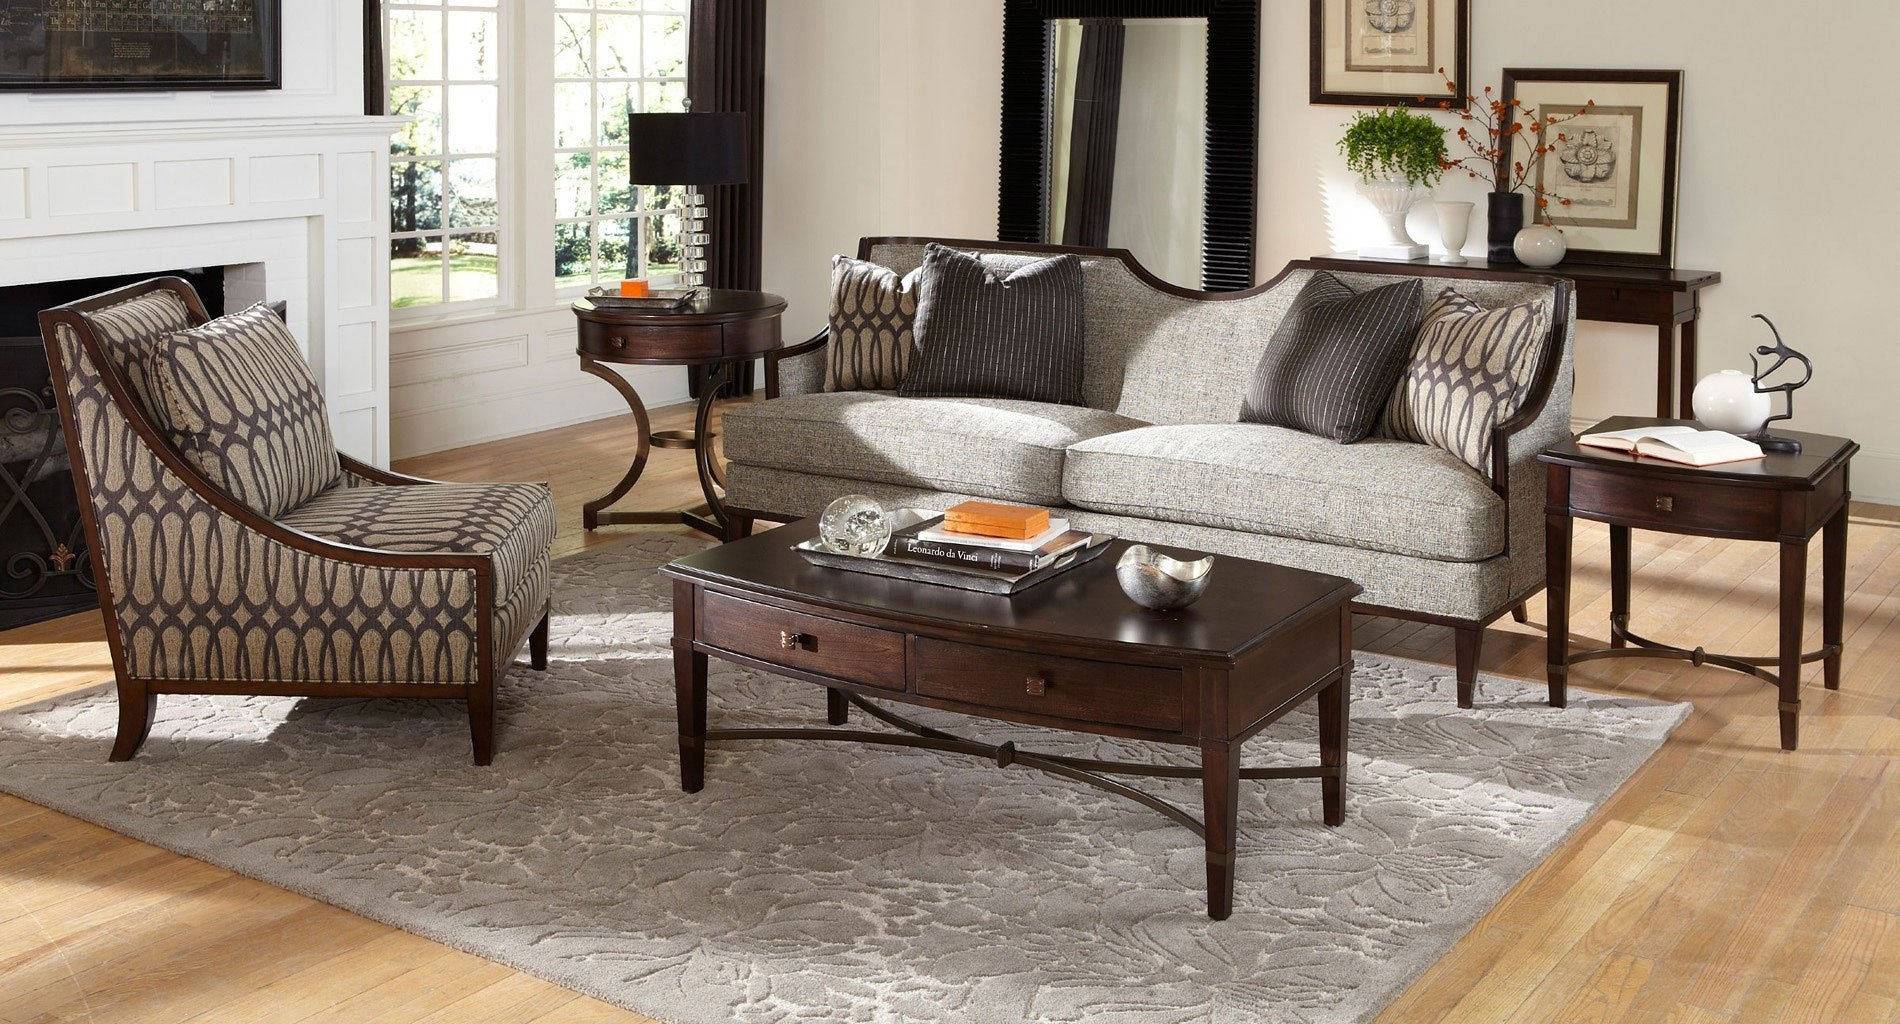 Intrigue Harper Mineral Living Room Set Art Furniture | Furniture Cart Intended For Harper Down 3 Piece Sectionals (View 19 of 25)